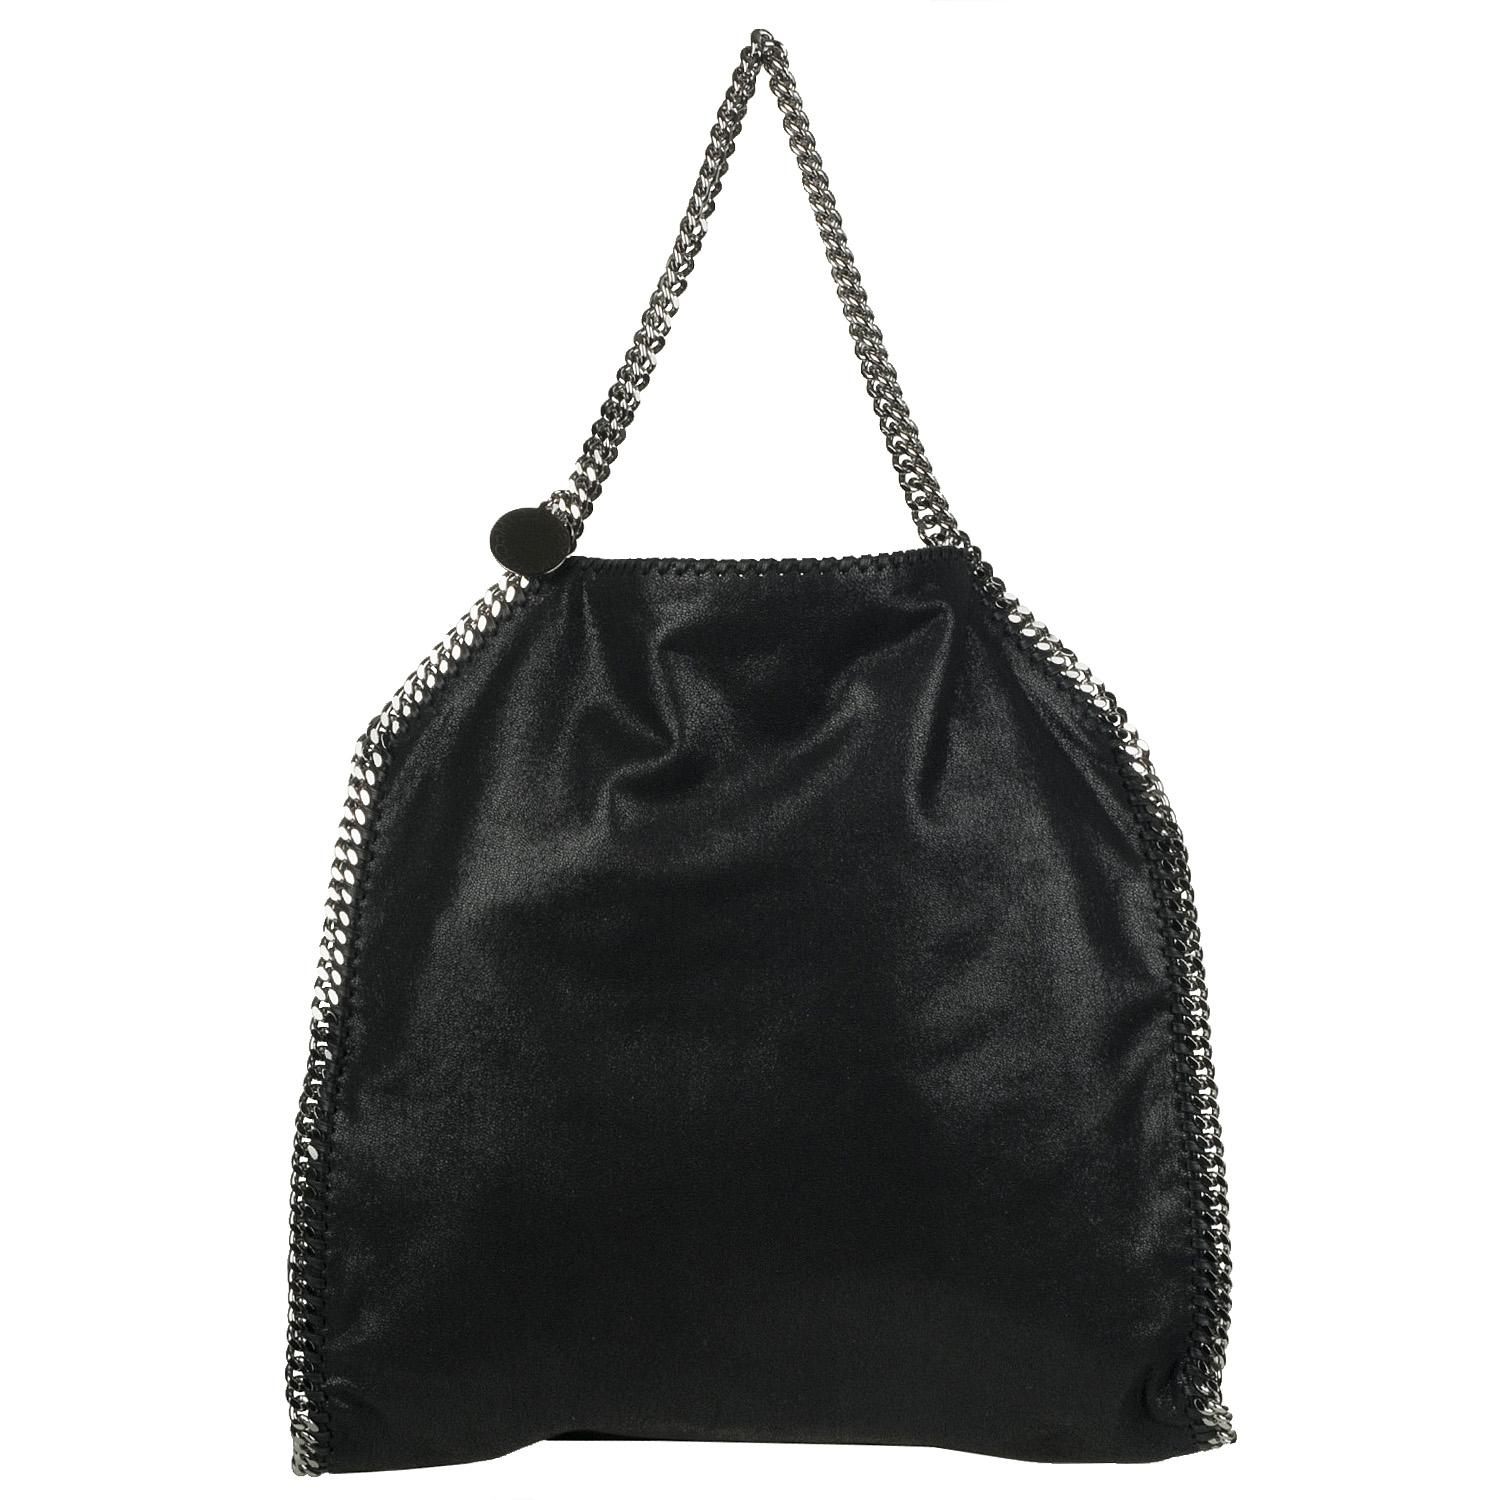 Shop Stella McCartney Shaggy Deer Falabella Tote - Free Shipping Today -  Overstock.com - 5982775 1640ddbfefa5a